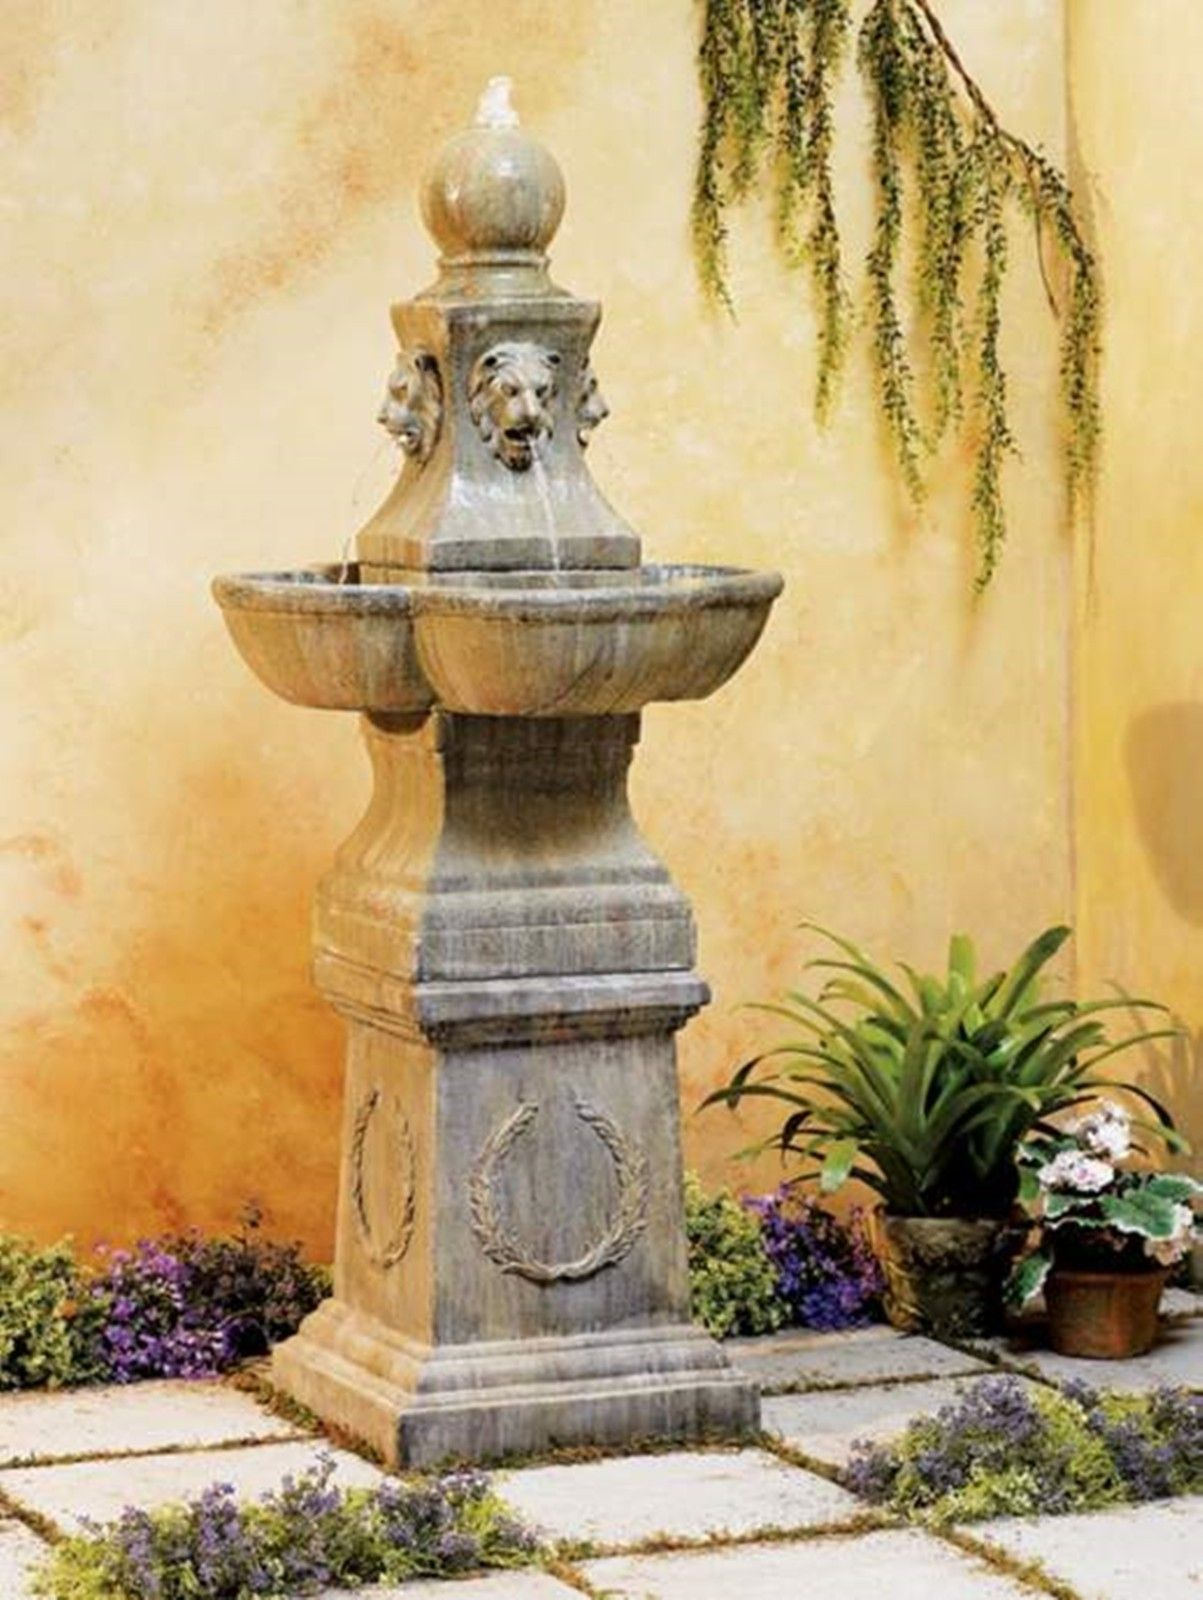 Tuscan Outdoor Water Fountains | Home design ideas